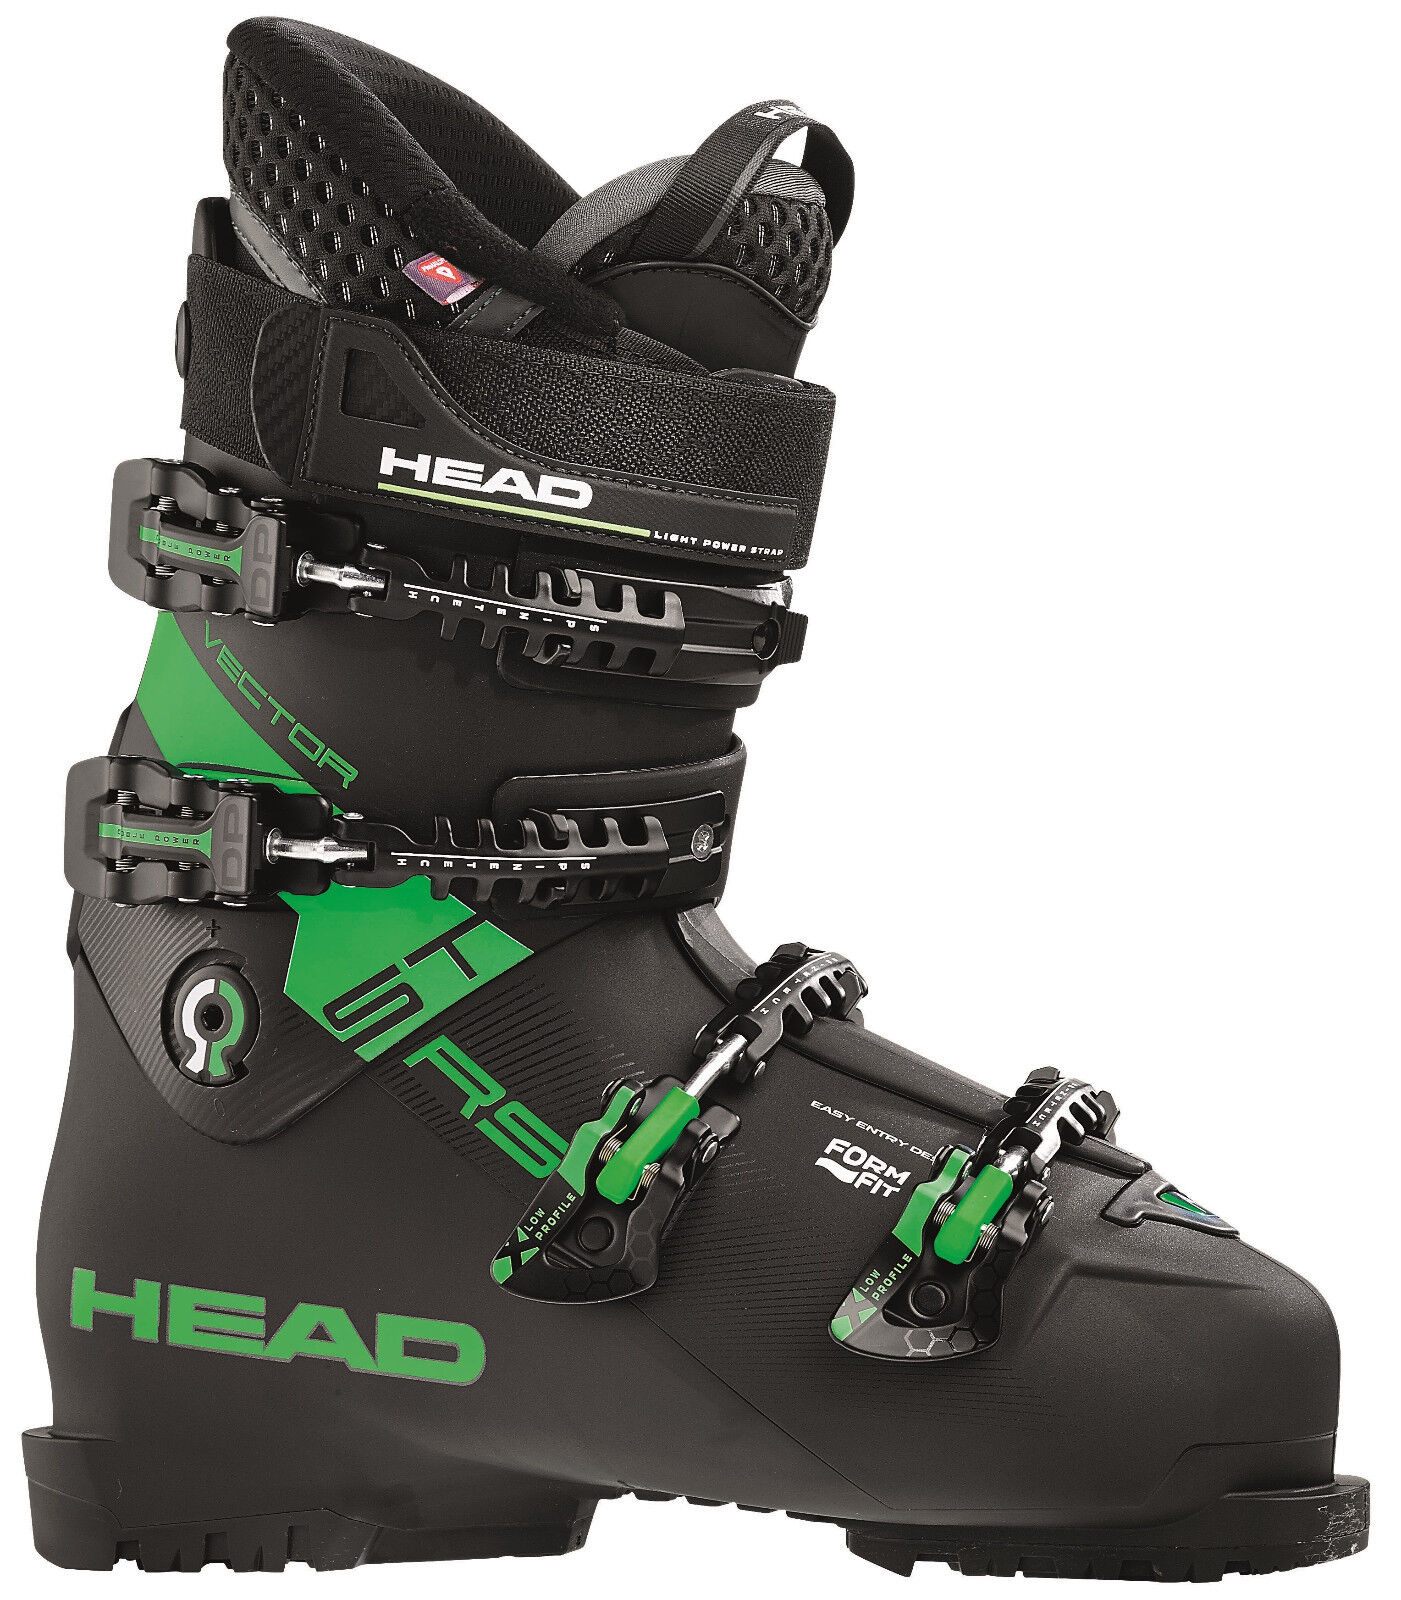 HEAD VECTOR RS ST Skistiefel Skischuh UNISEX Flex  100-110 Collection 2019 NEU